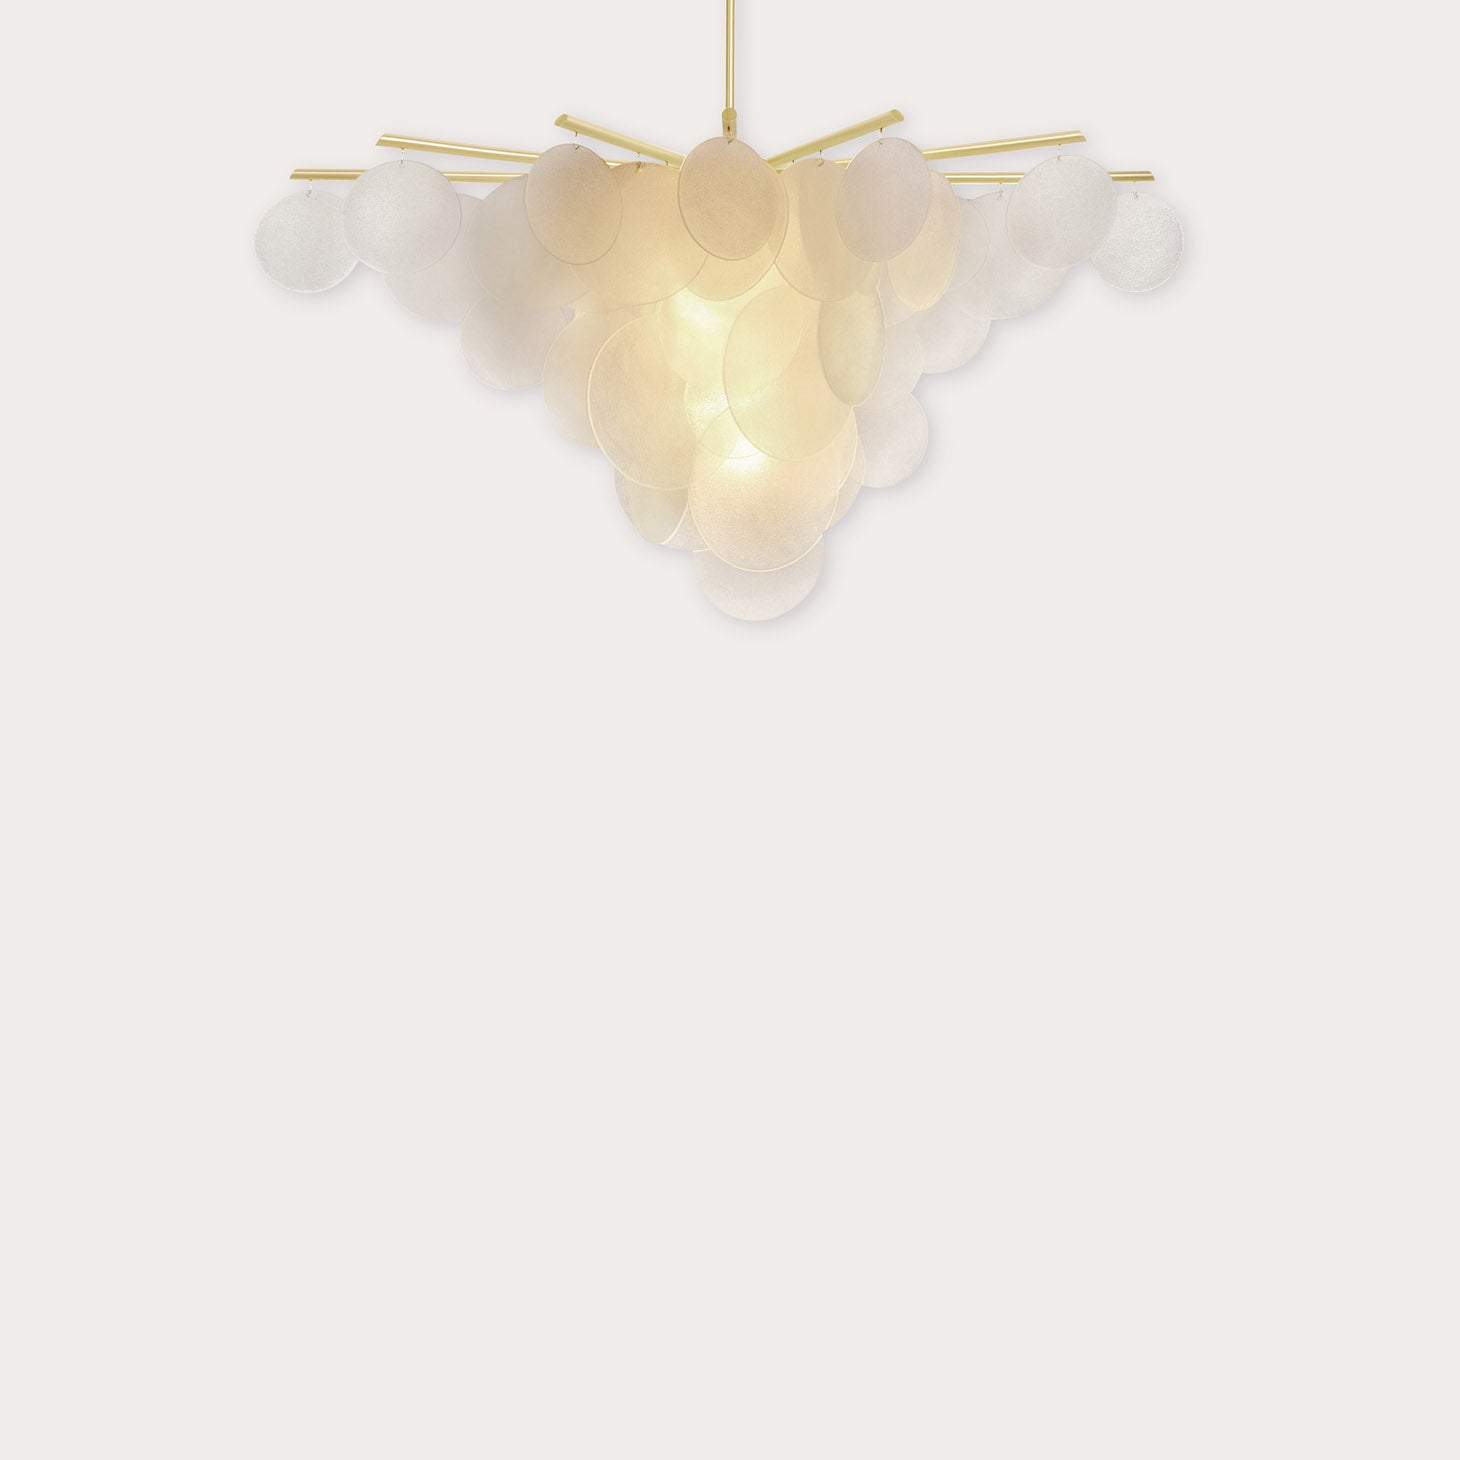 Nimbus Lighting Chris Turner Designer Furniture Sku: 632-160-10023